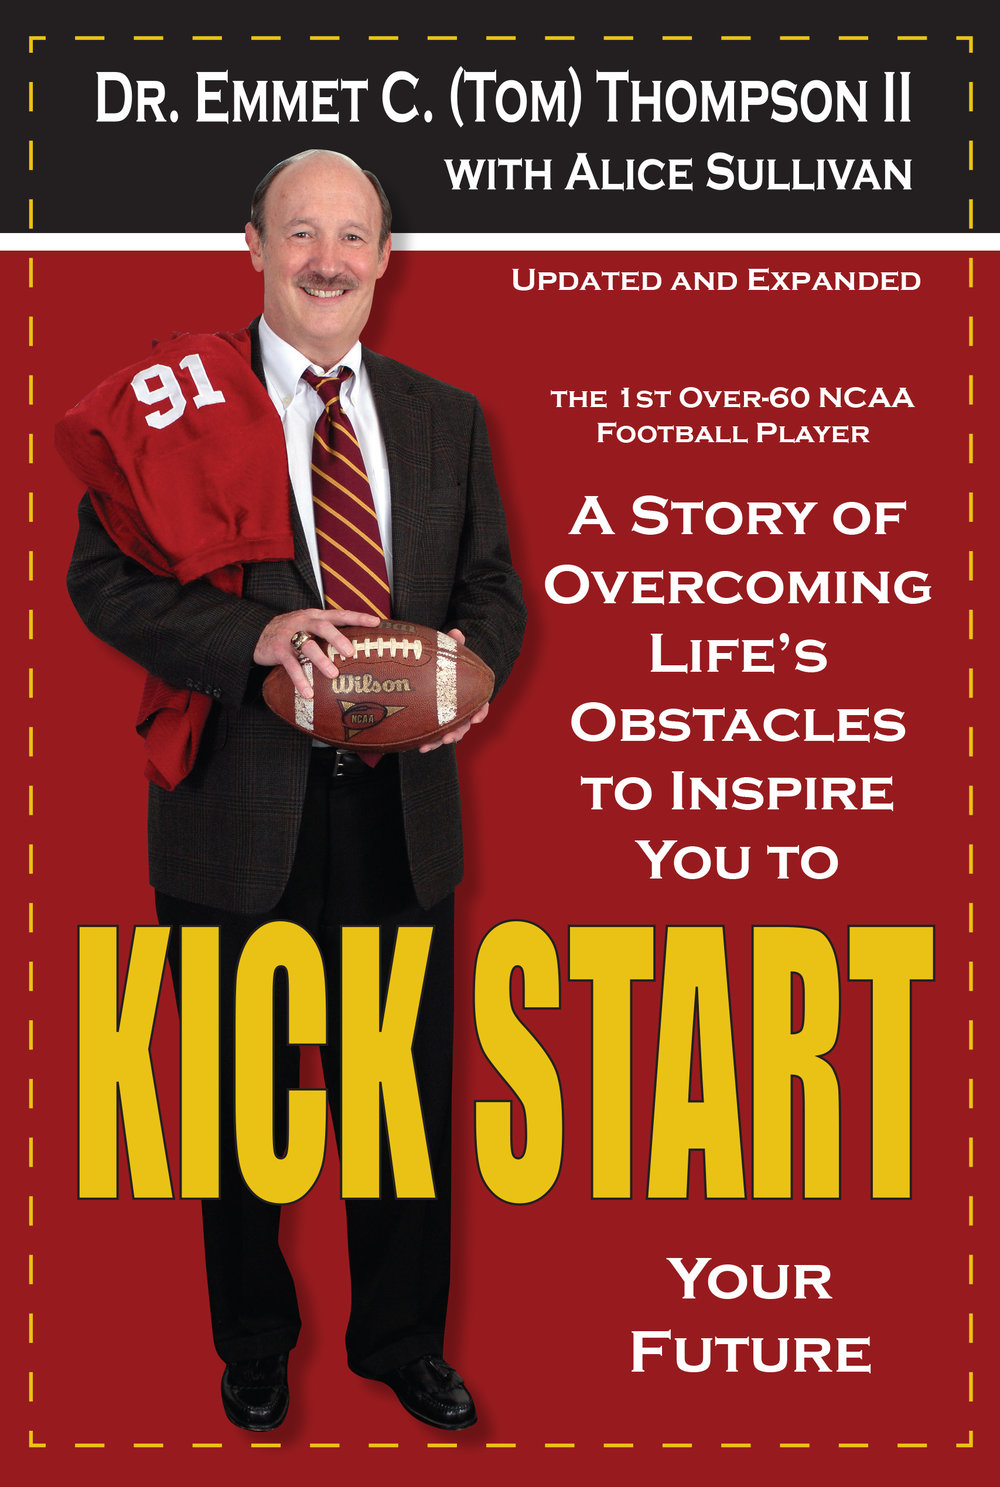 Dr. Emmet C. (Tom) Thompson II is currently readying a new updated and expanded edition of Kick Start for a January 31, 2017 release. (Roark Photography photo)